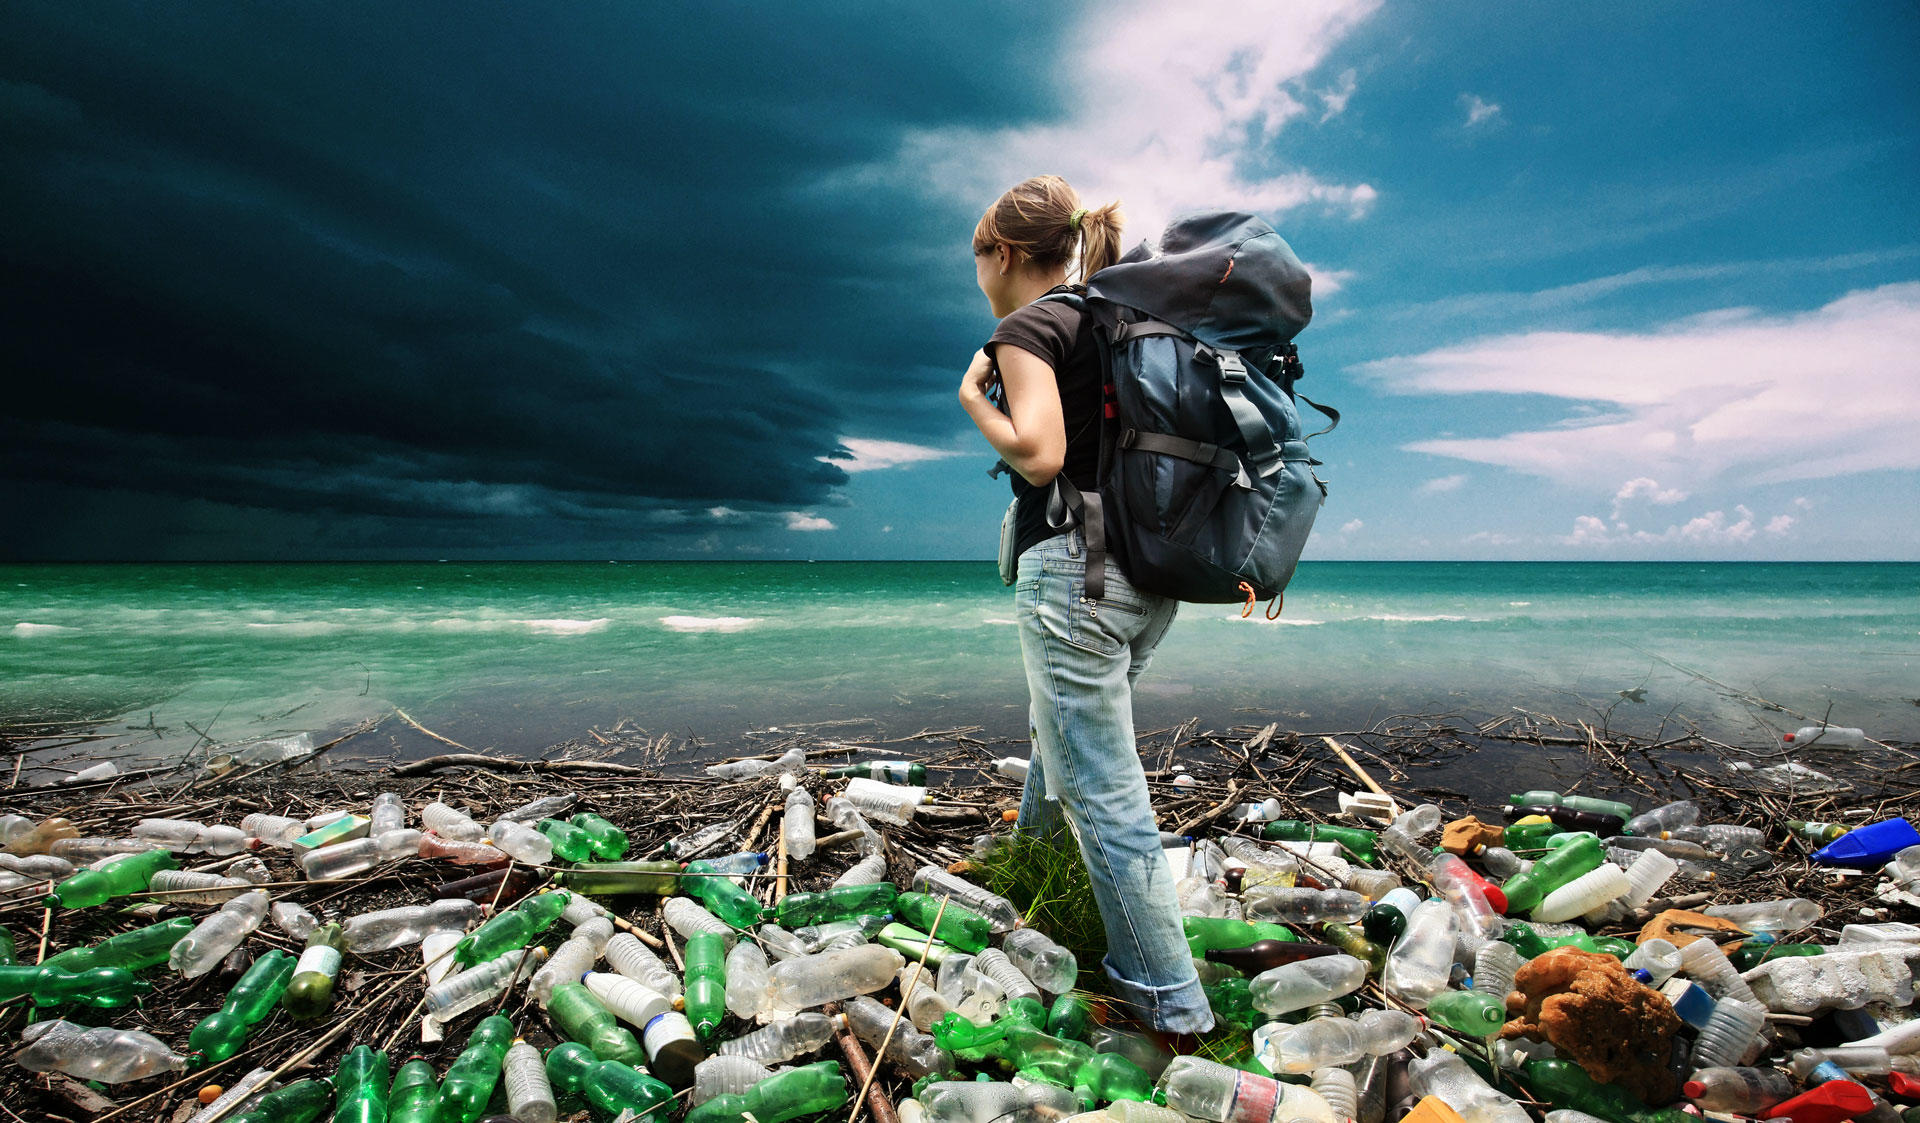 Girl with a backpack standing on a beach full of garbage looking at the sea.